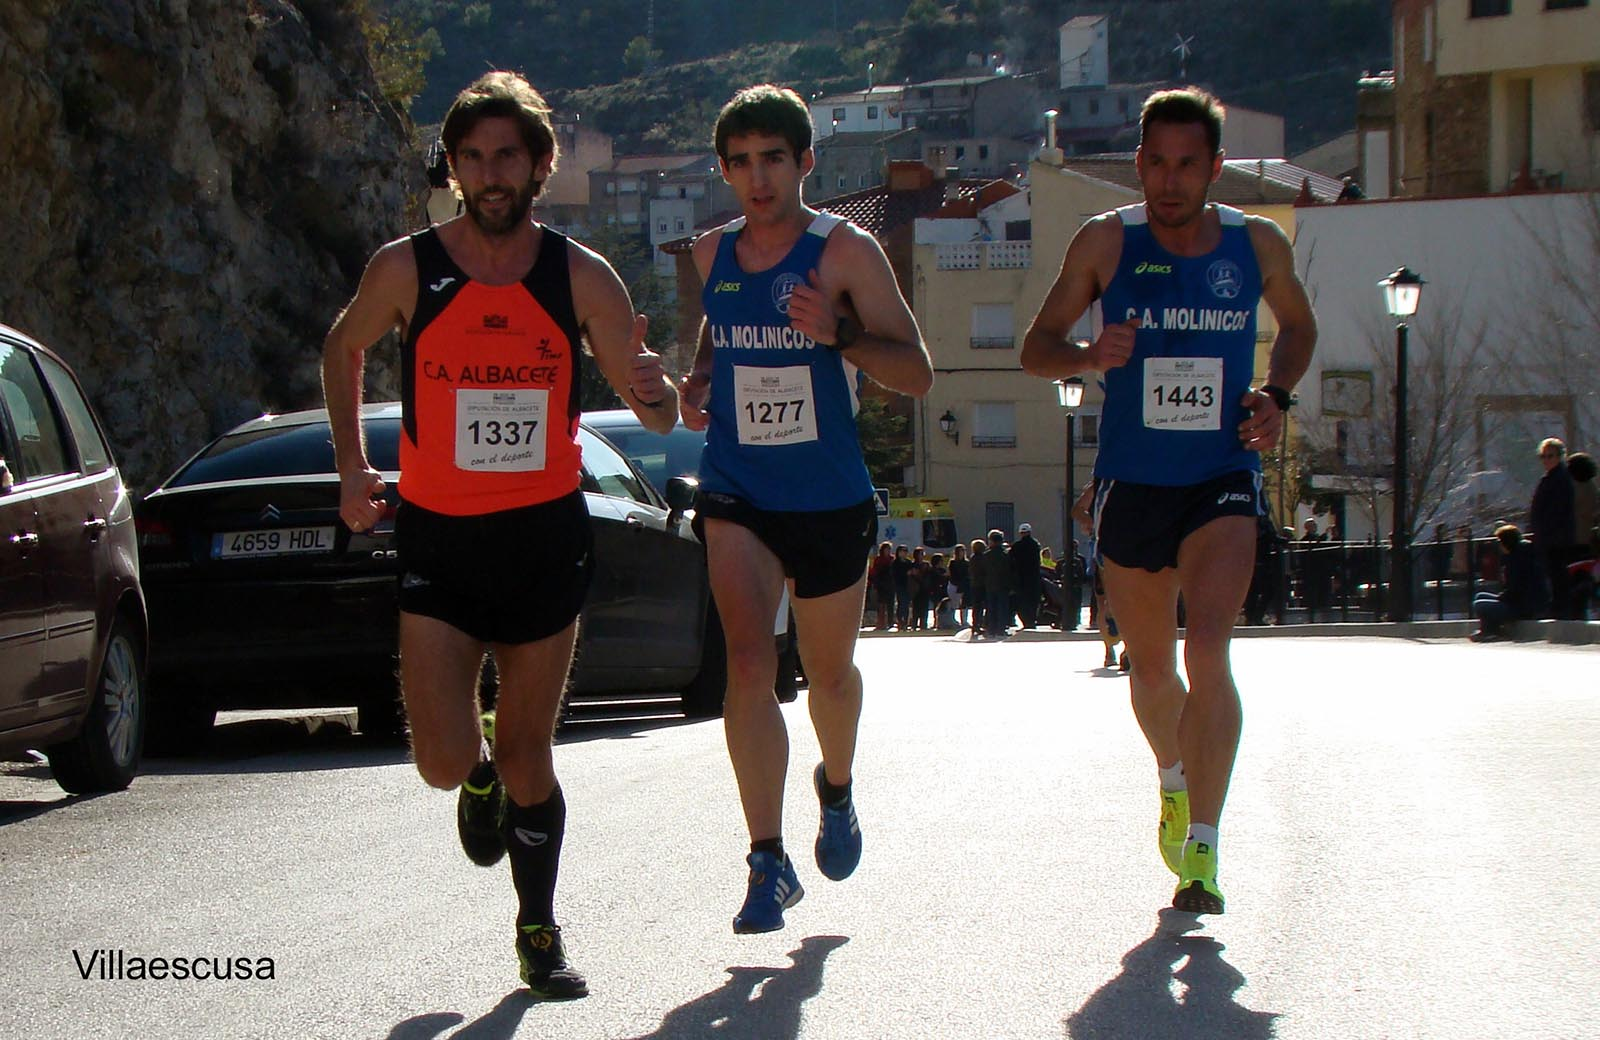 XIV Carrera Popular de Molinicos